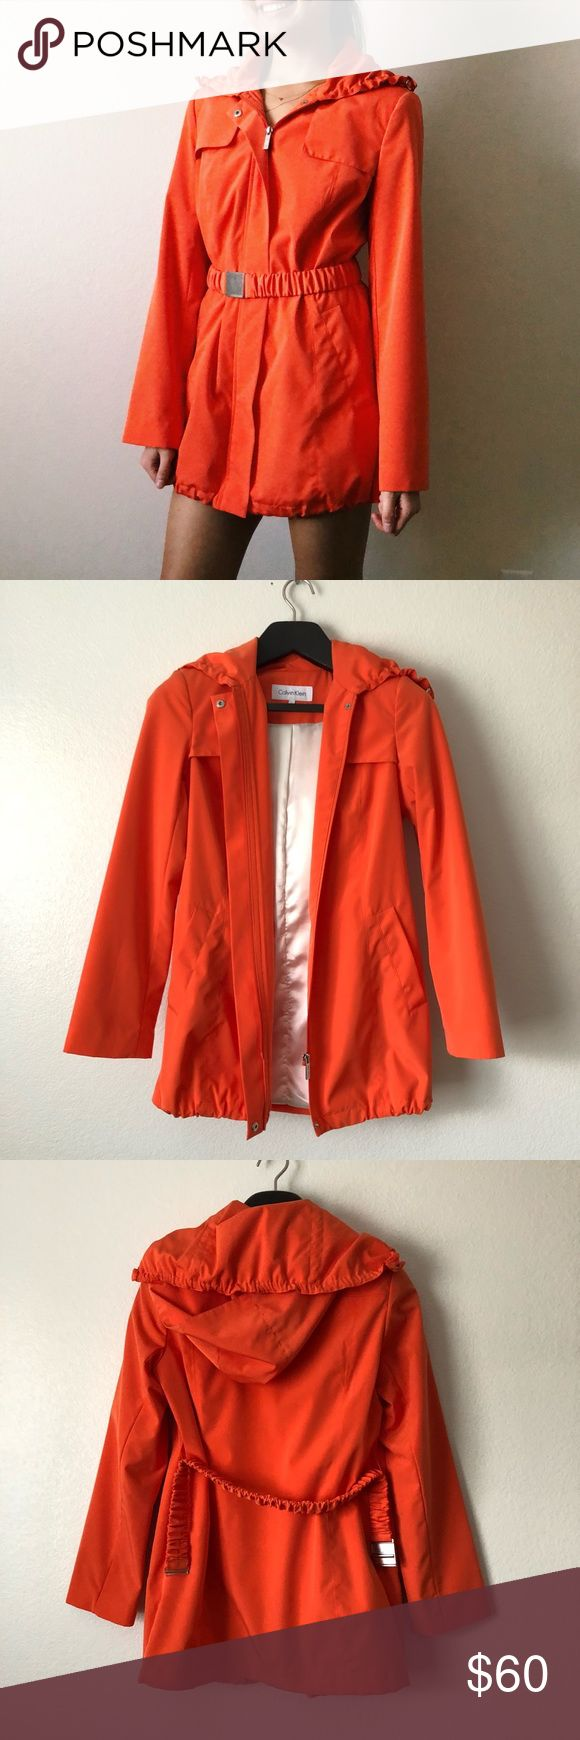 "Calvin Klein Sleek Orange Zip Up Trench Coat Calvin Klein Sleek Orange Zip Up Trench Coat   -Super trendy, unique, fashionable! -Vibrant Orange, removable hoodie, longsleeves, satin inside, elastic removable belt, drawstring on bottom of coat, light shoulder padding  -Pristine overall Condition, some wear on belt buckle  -Measurements (all approx.) Shoulders: 16""Chest: 38"" Waist: 34""Length: 3""Sleeves: 24""  -Smoke free home, ask all questions before purchasing IG: @ jadeskelton_ Calvin Klein…"